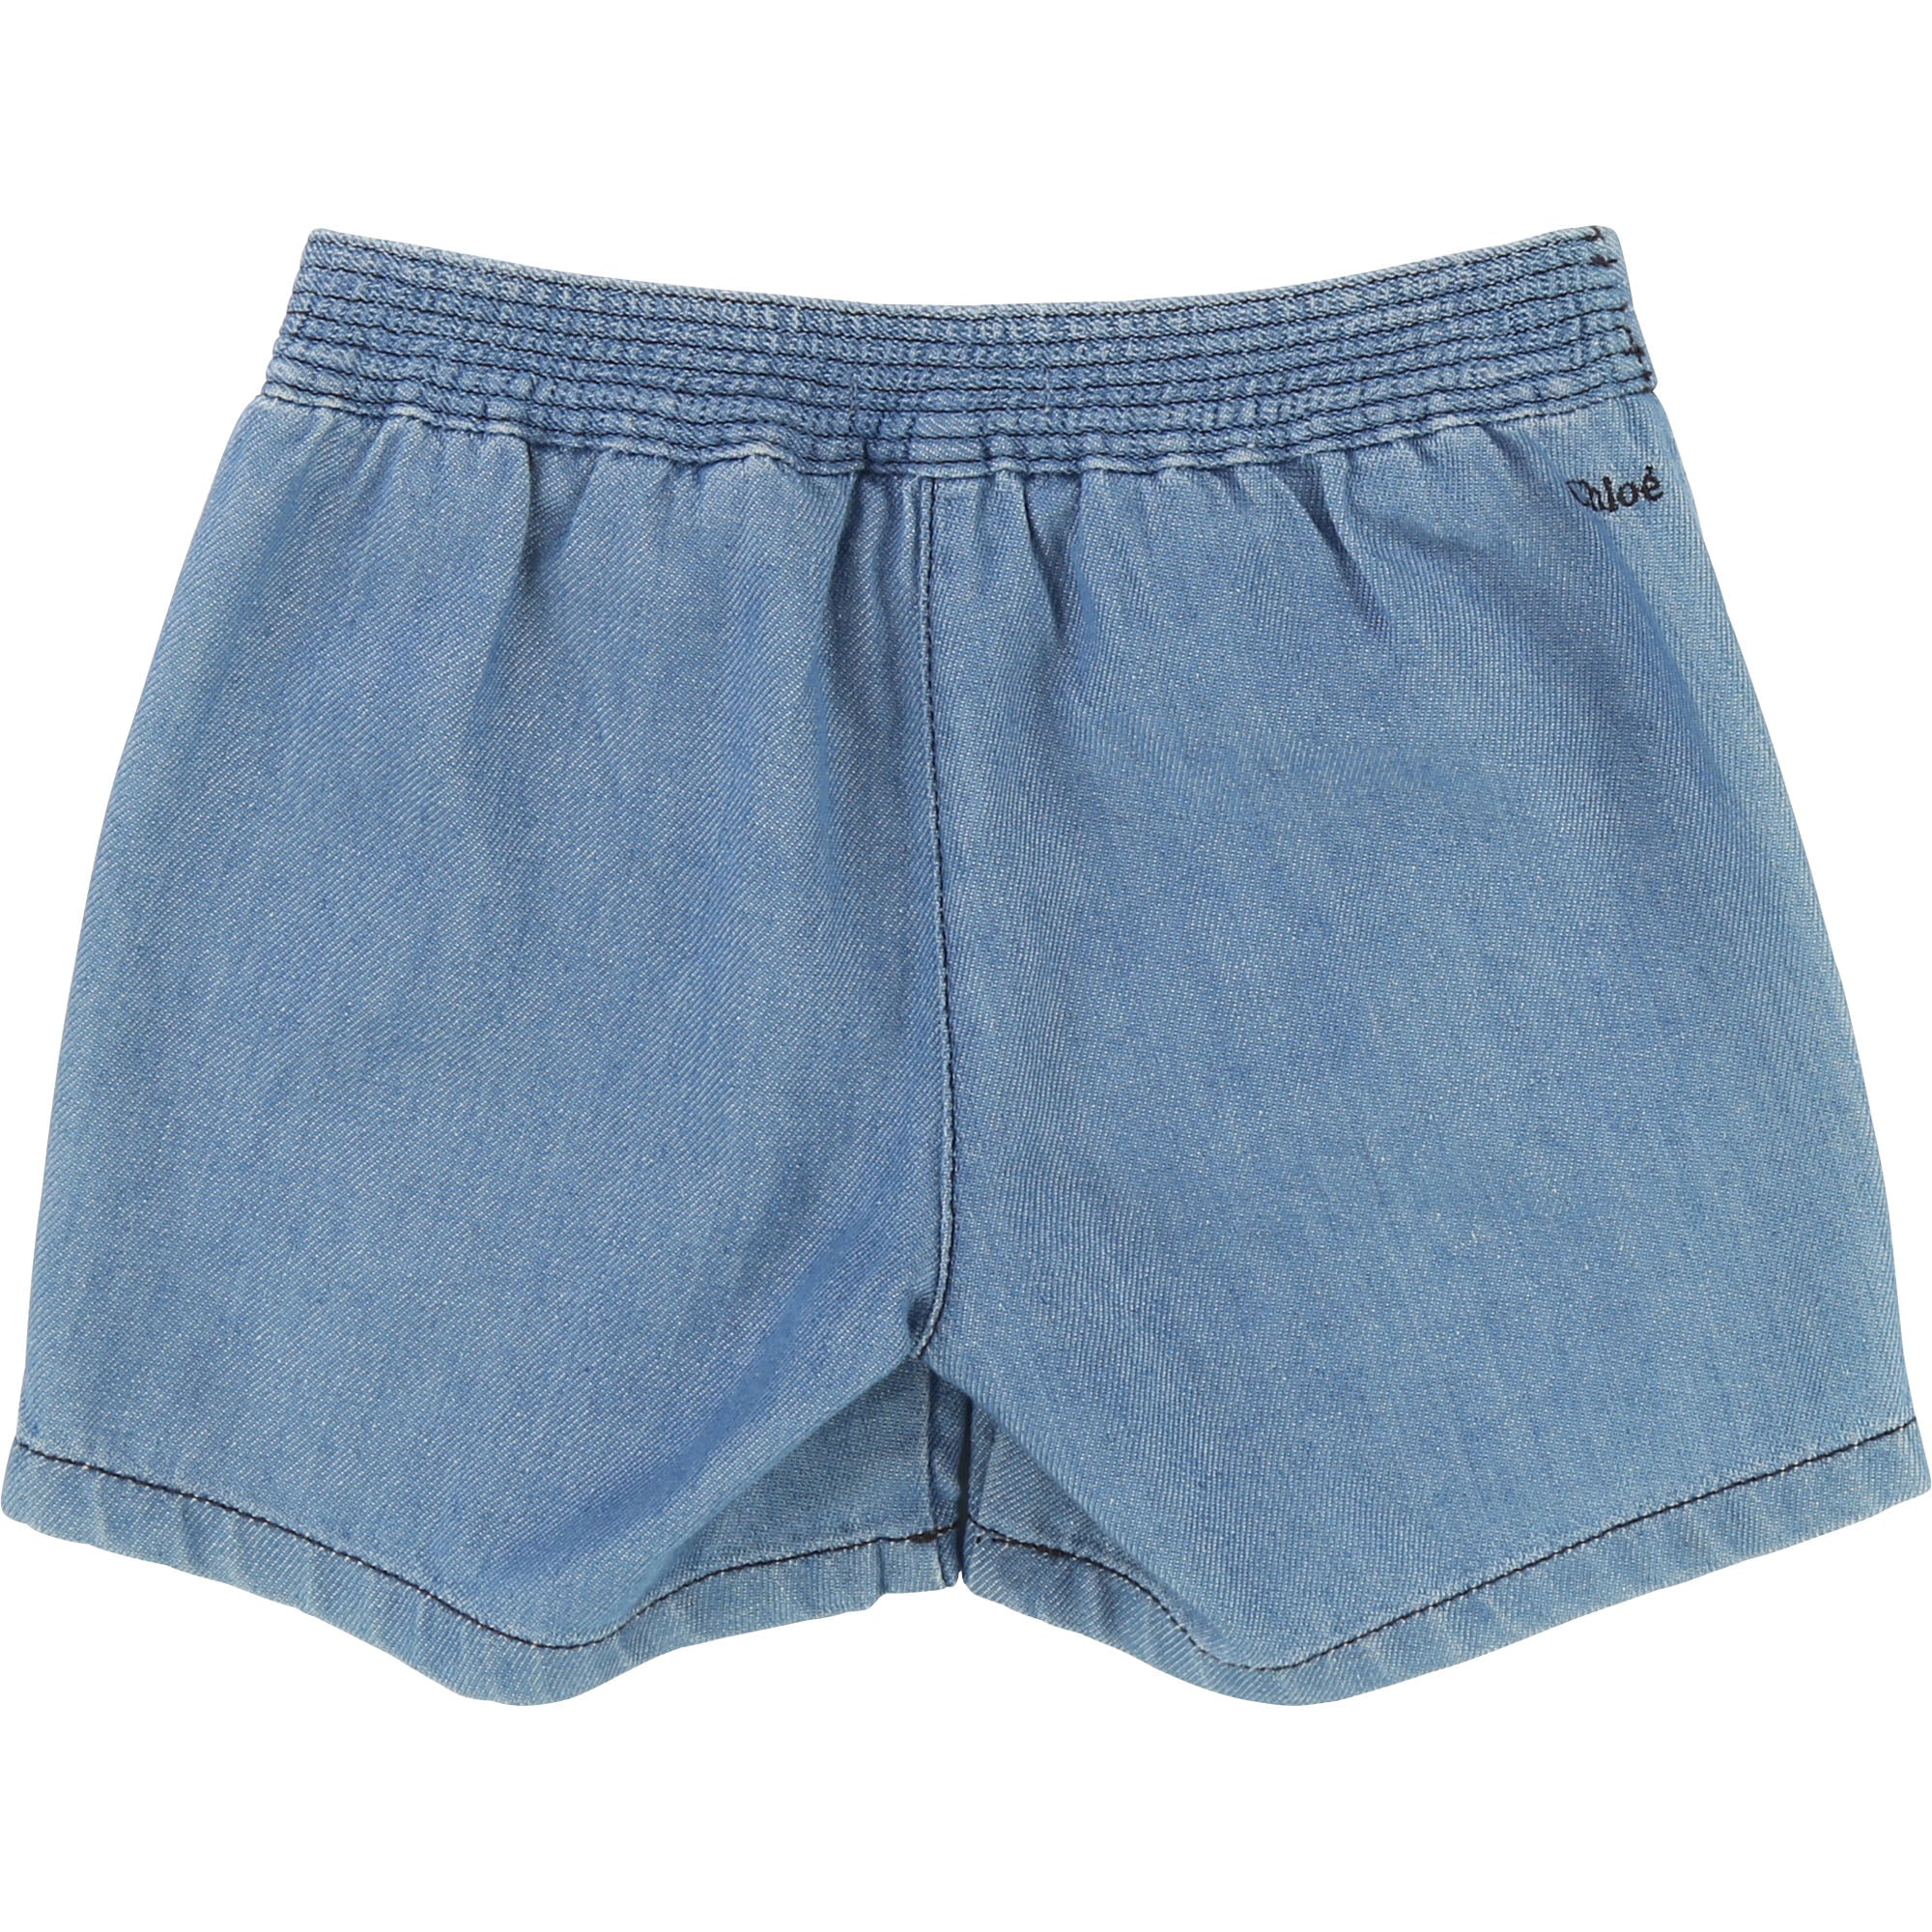 Chloe Blue Denim Shorts